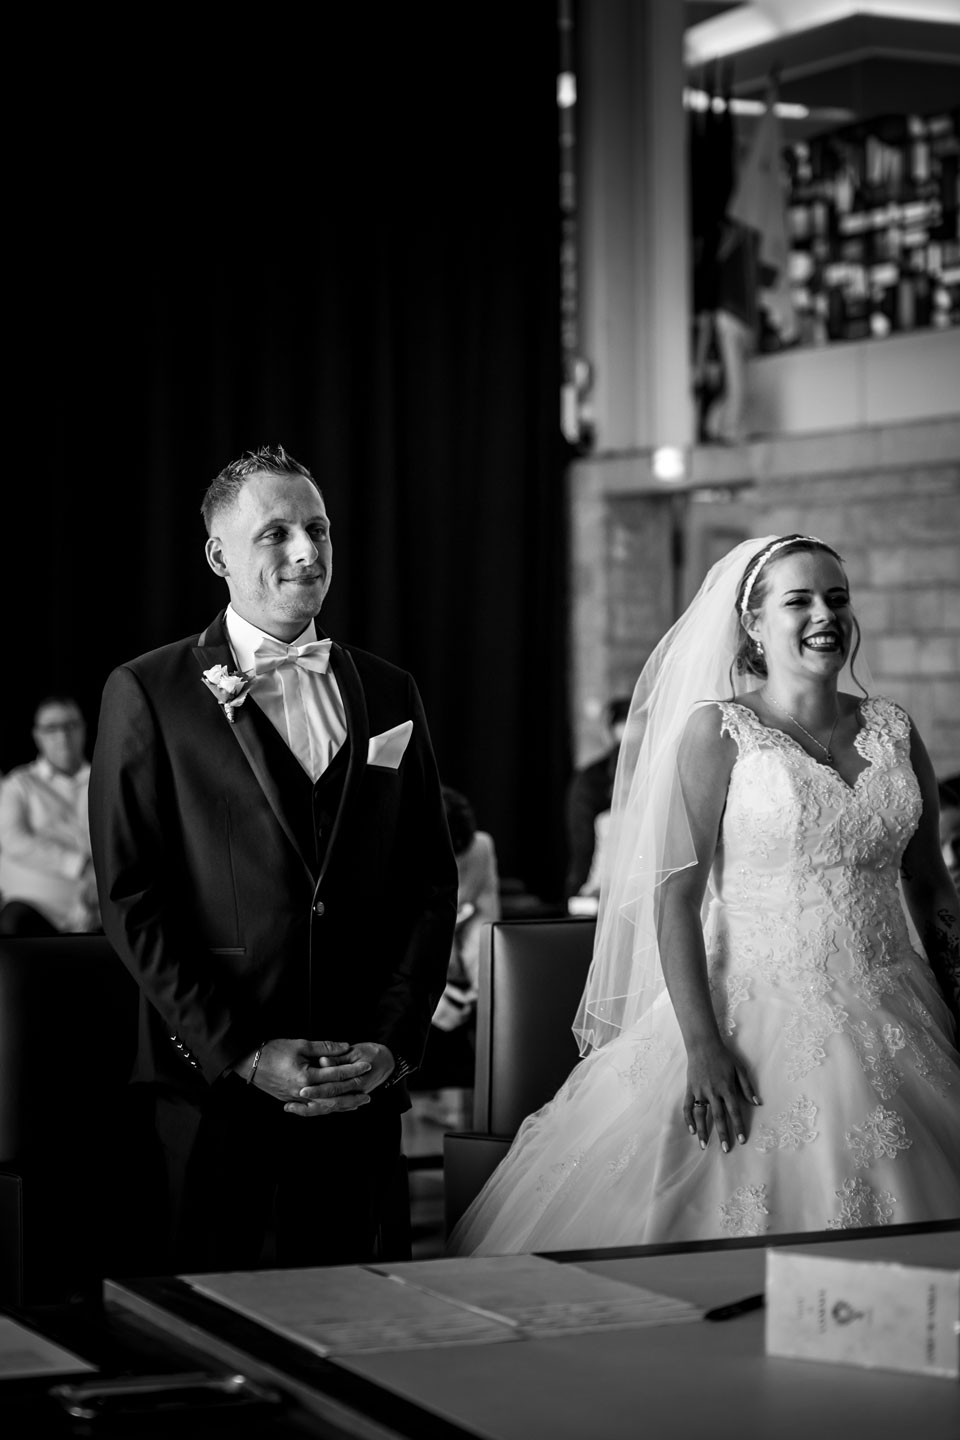 20200912-mariage-ophelie-alexandre-012